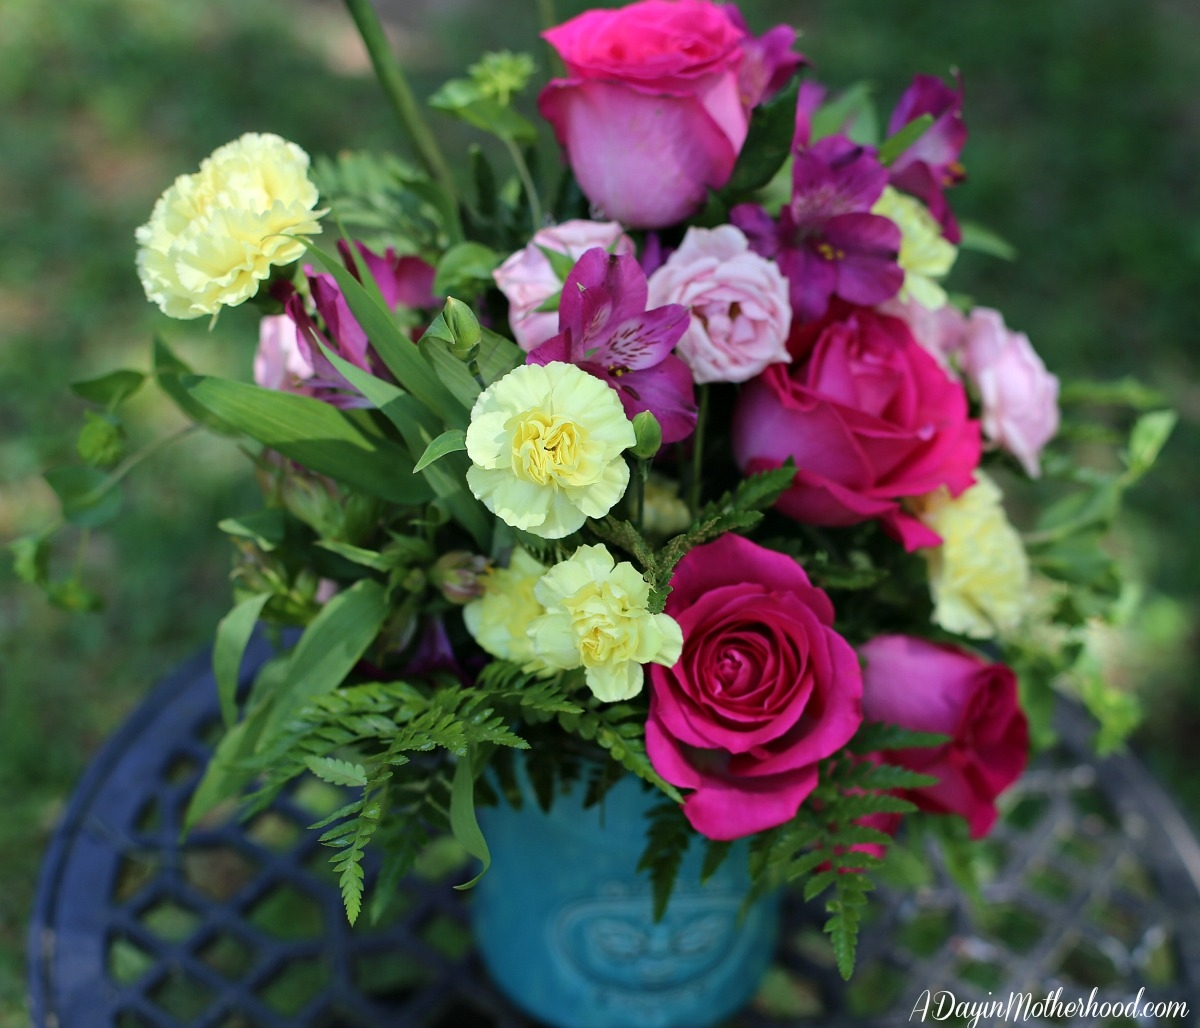 WIN a Teleflora Mother's Day Bouquet to Spoil the One You Love with beauty